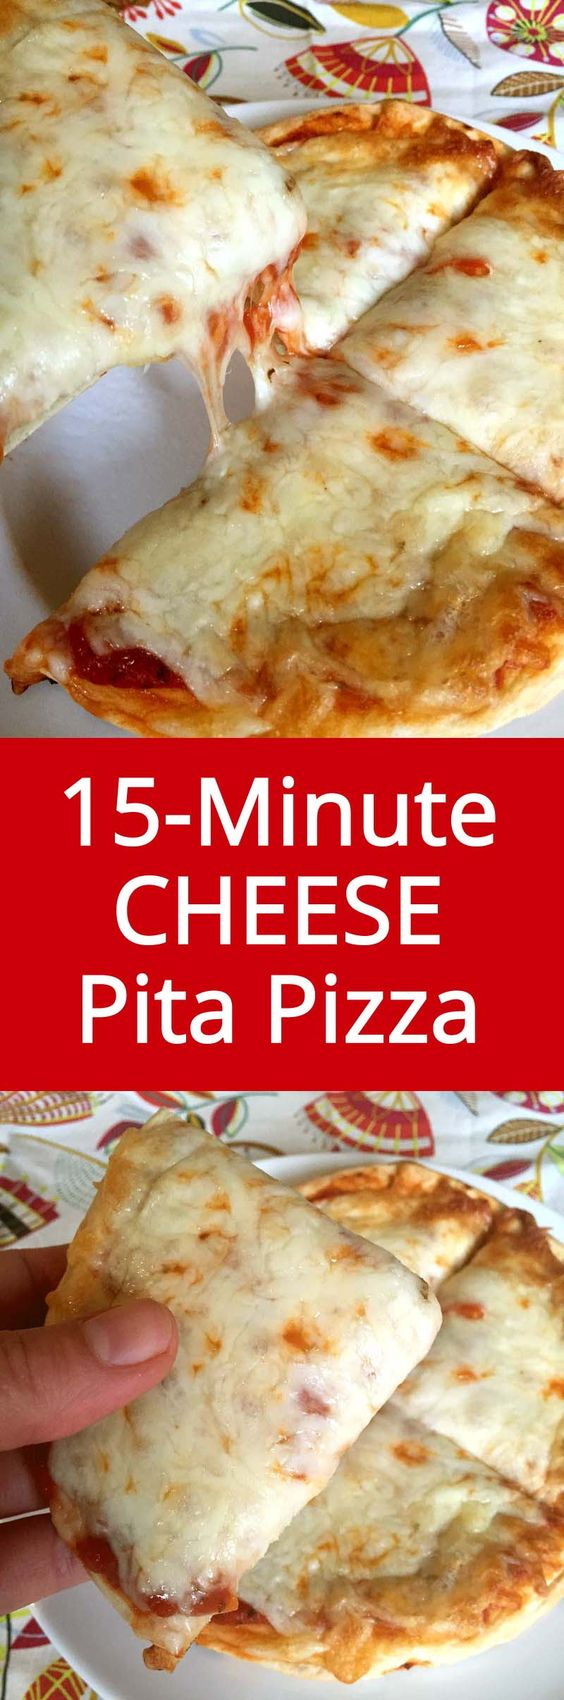 Easy 15-Minute Personal Cheese Pita Pizza Recipe - The Easiest Dinner Ever…